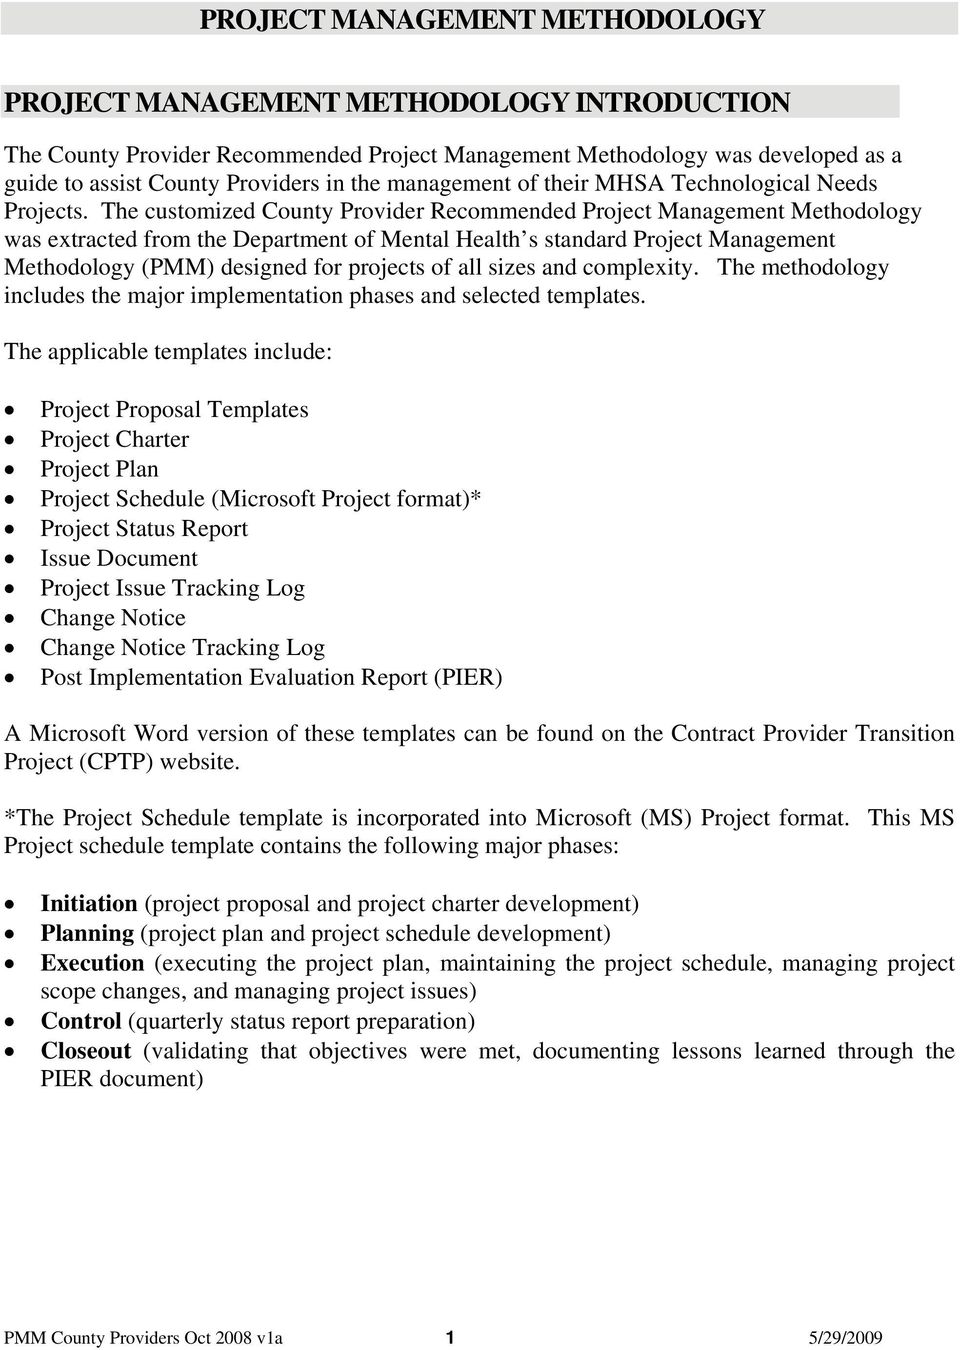 The customized County Provider Recommended Project Management Methodology was extracted from the Department of Mental Health s standard Project Management Methodology (PMM) designed for projects of